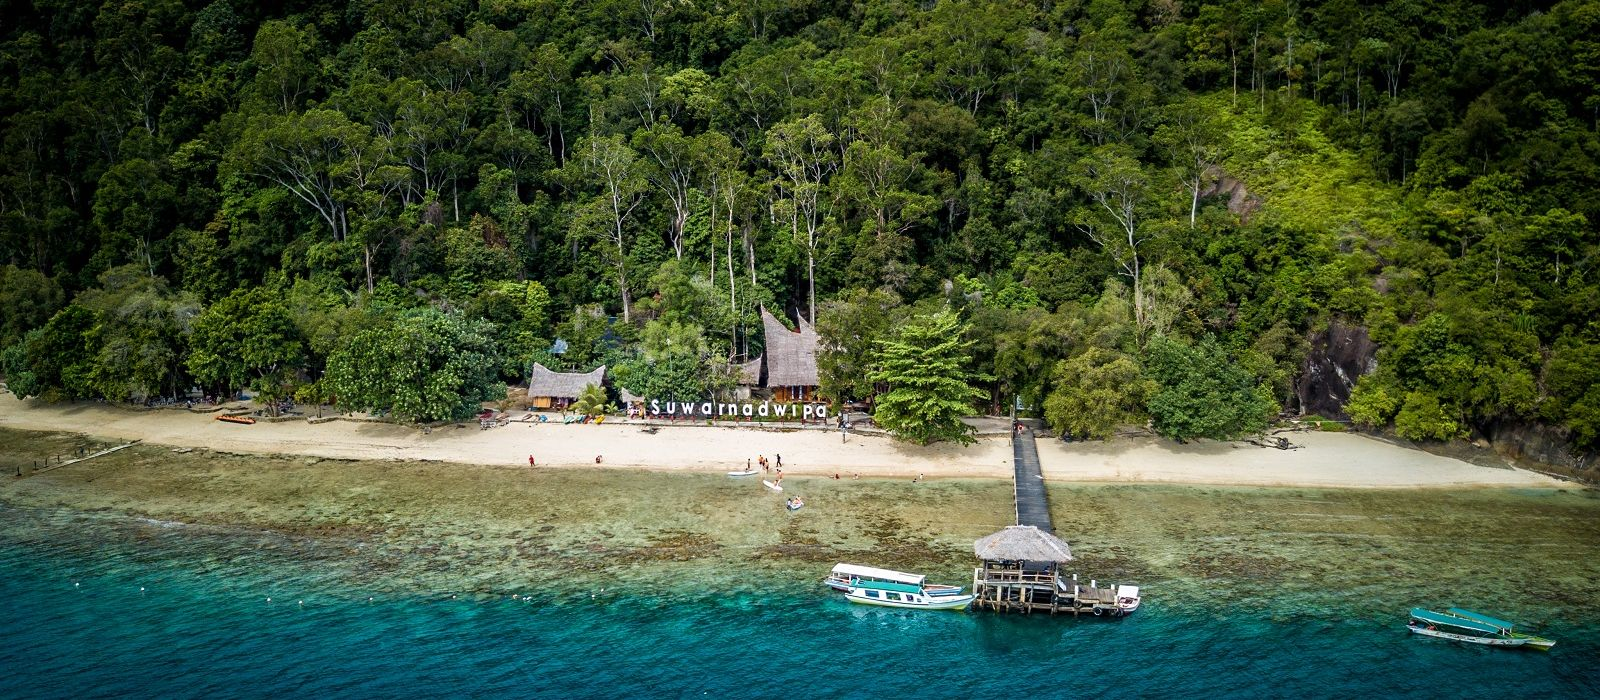 Best of Sulawesi and Sumatra Tour Trip 4